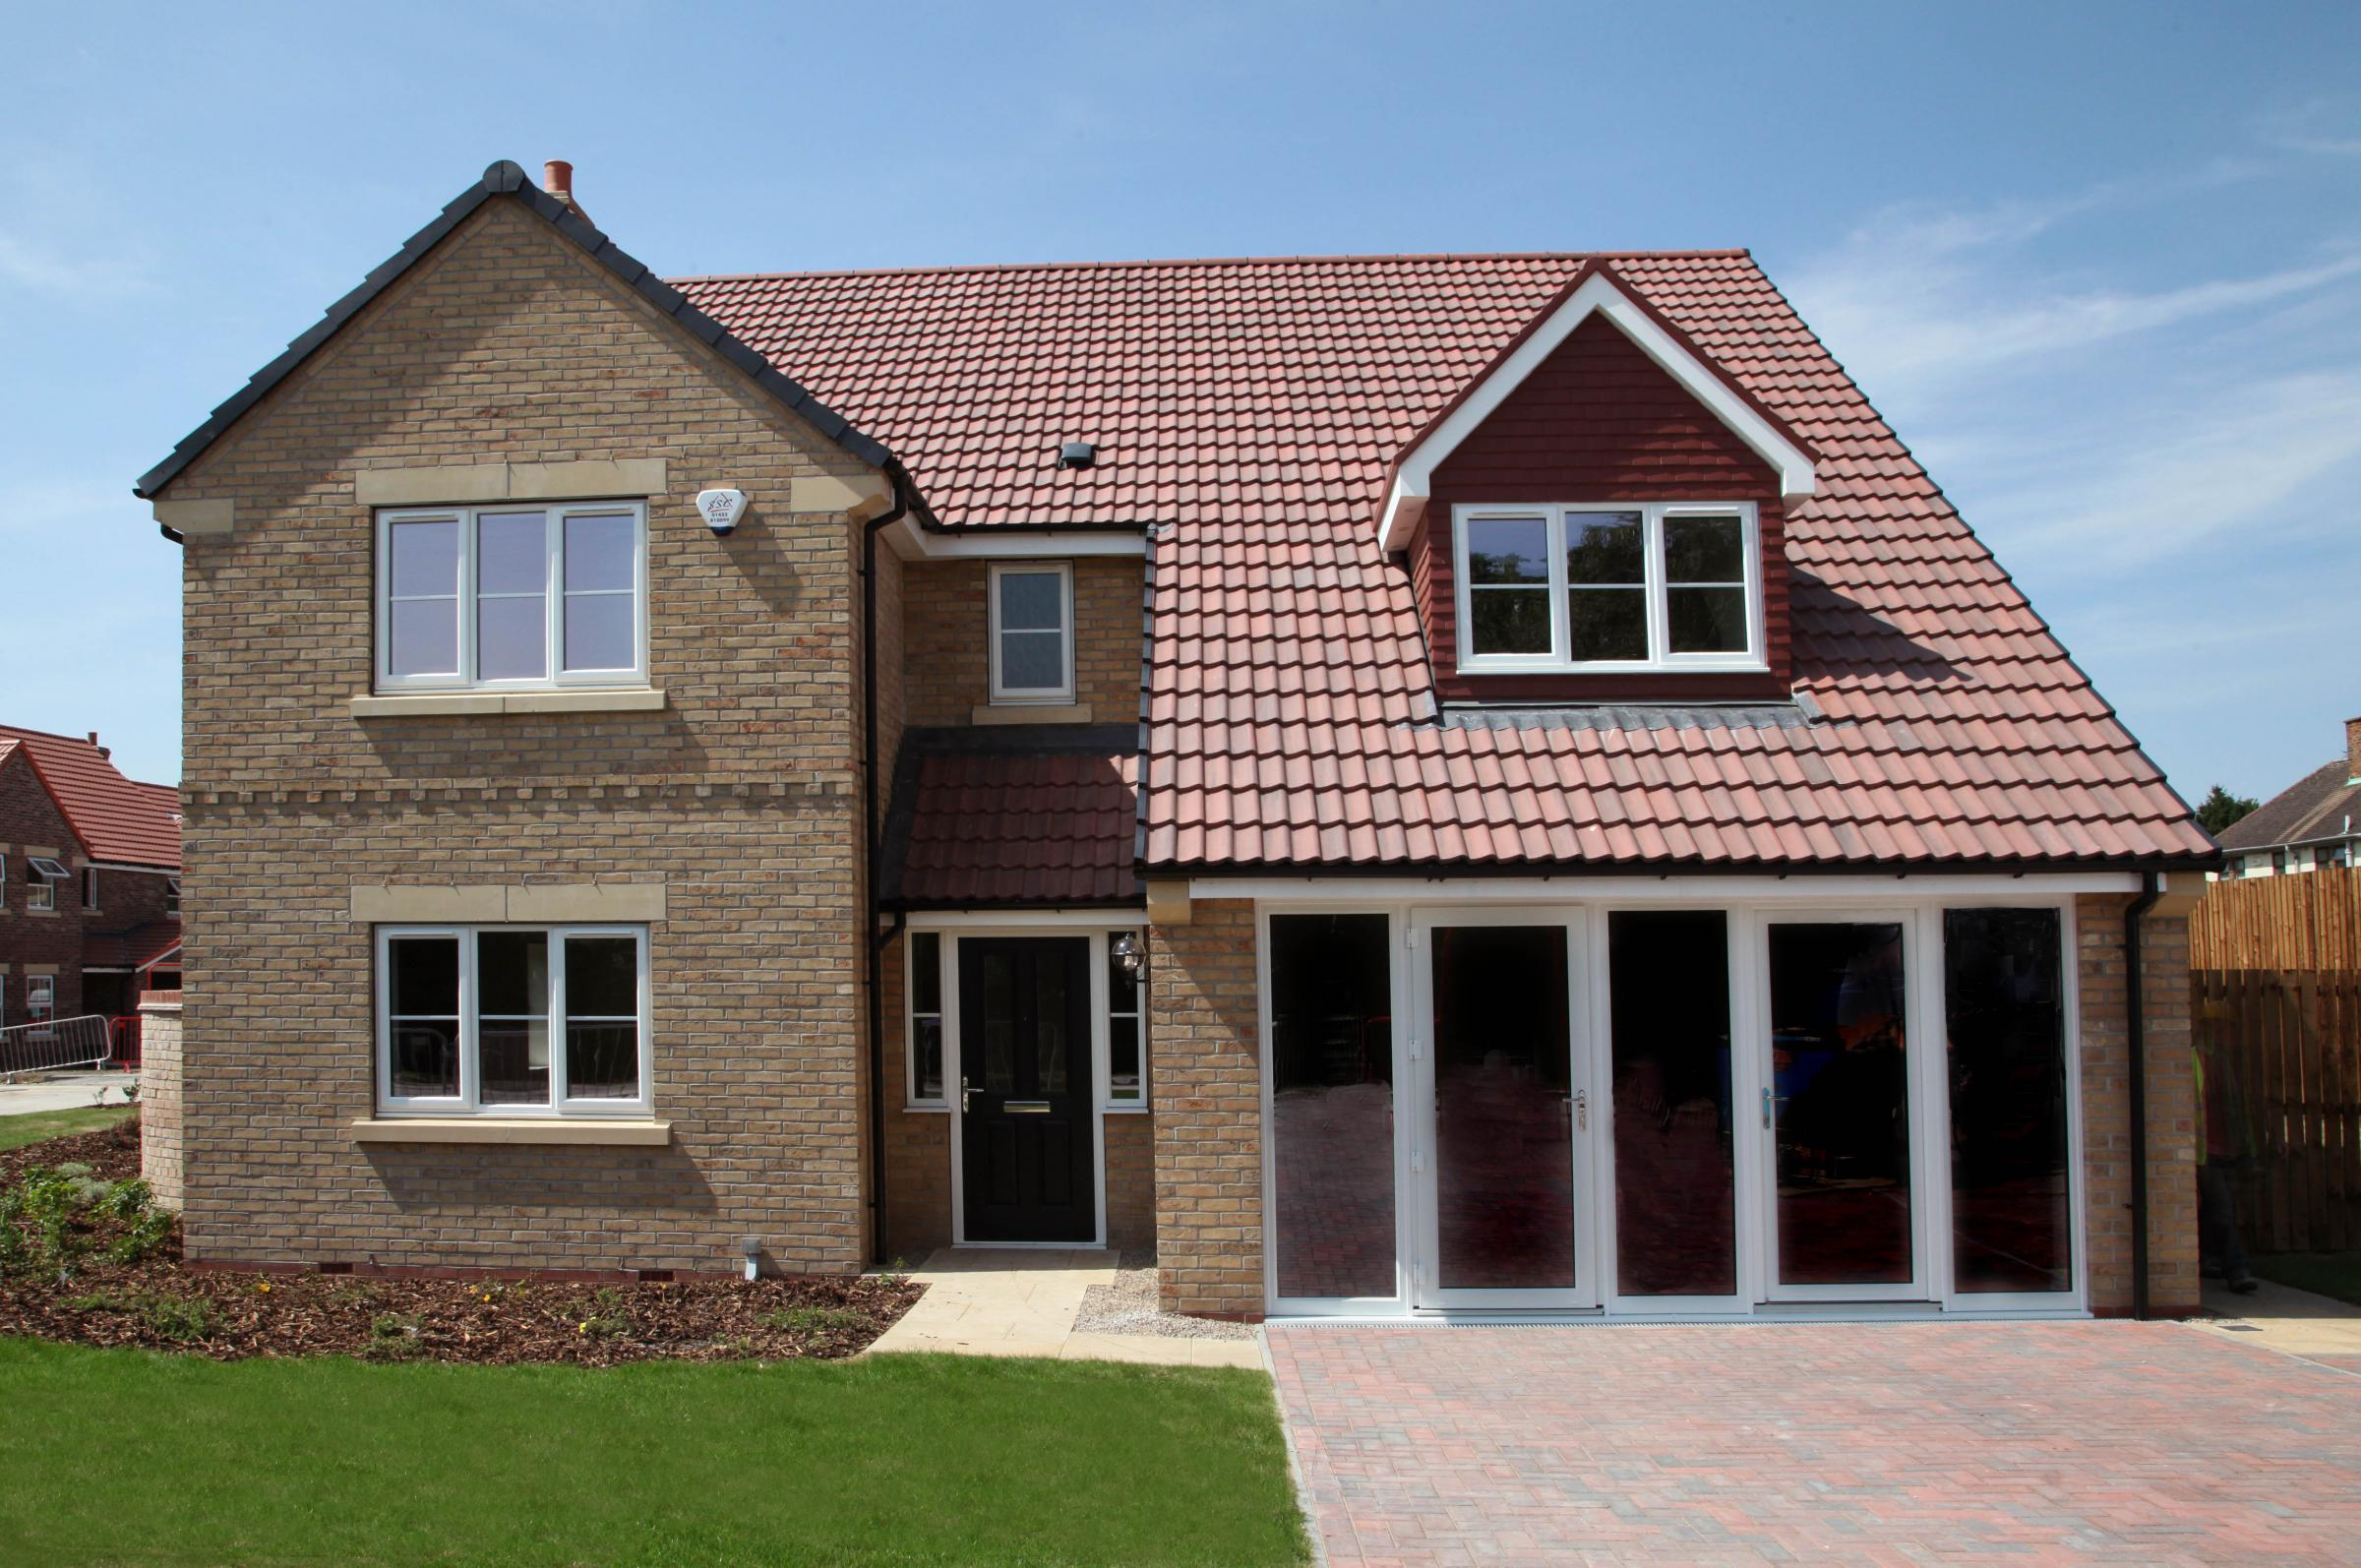 The Pilgrims Rest development by Linden Homes features ten detached homes in four house styles,with prices ranging from £349,950 to £579,750